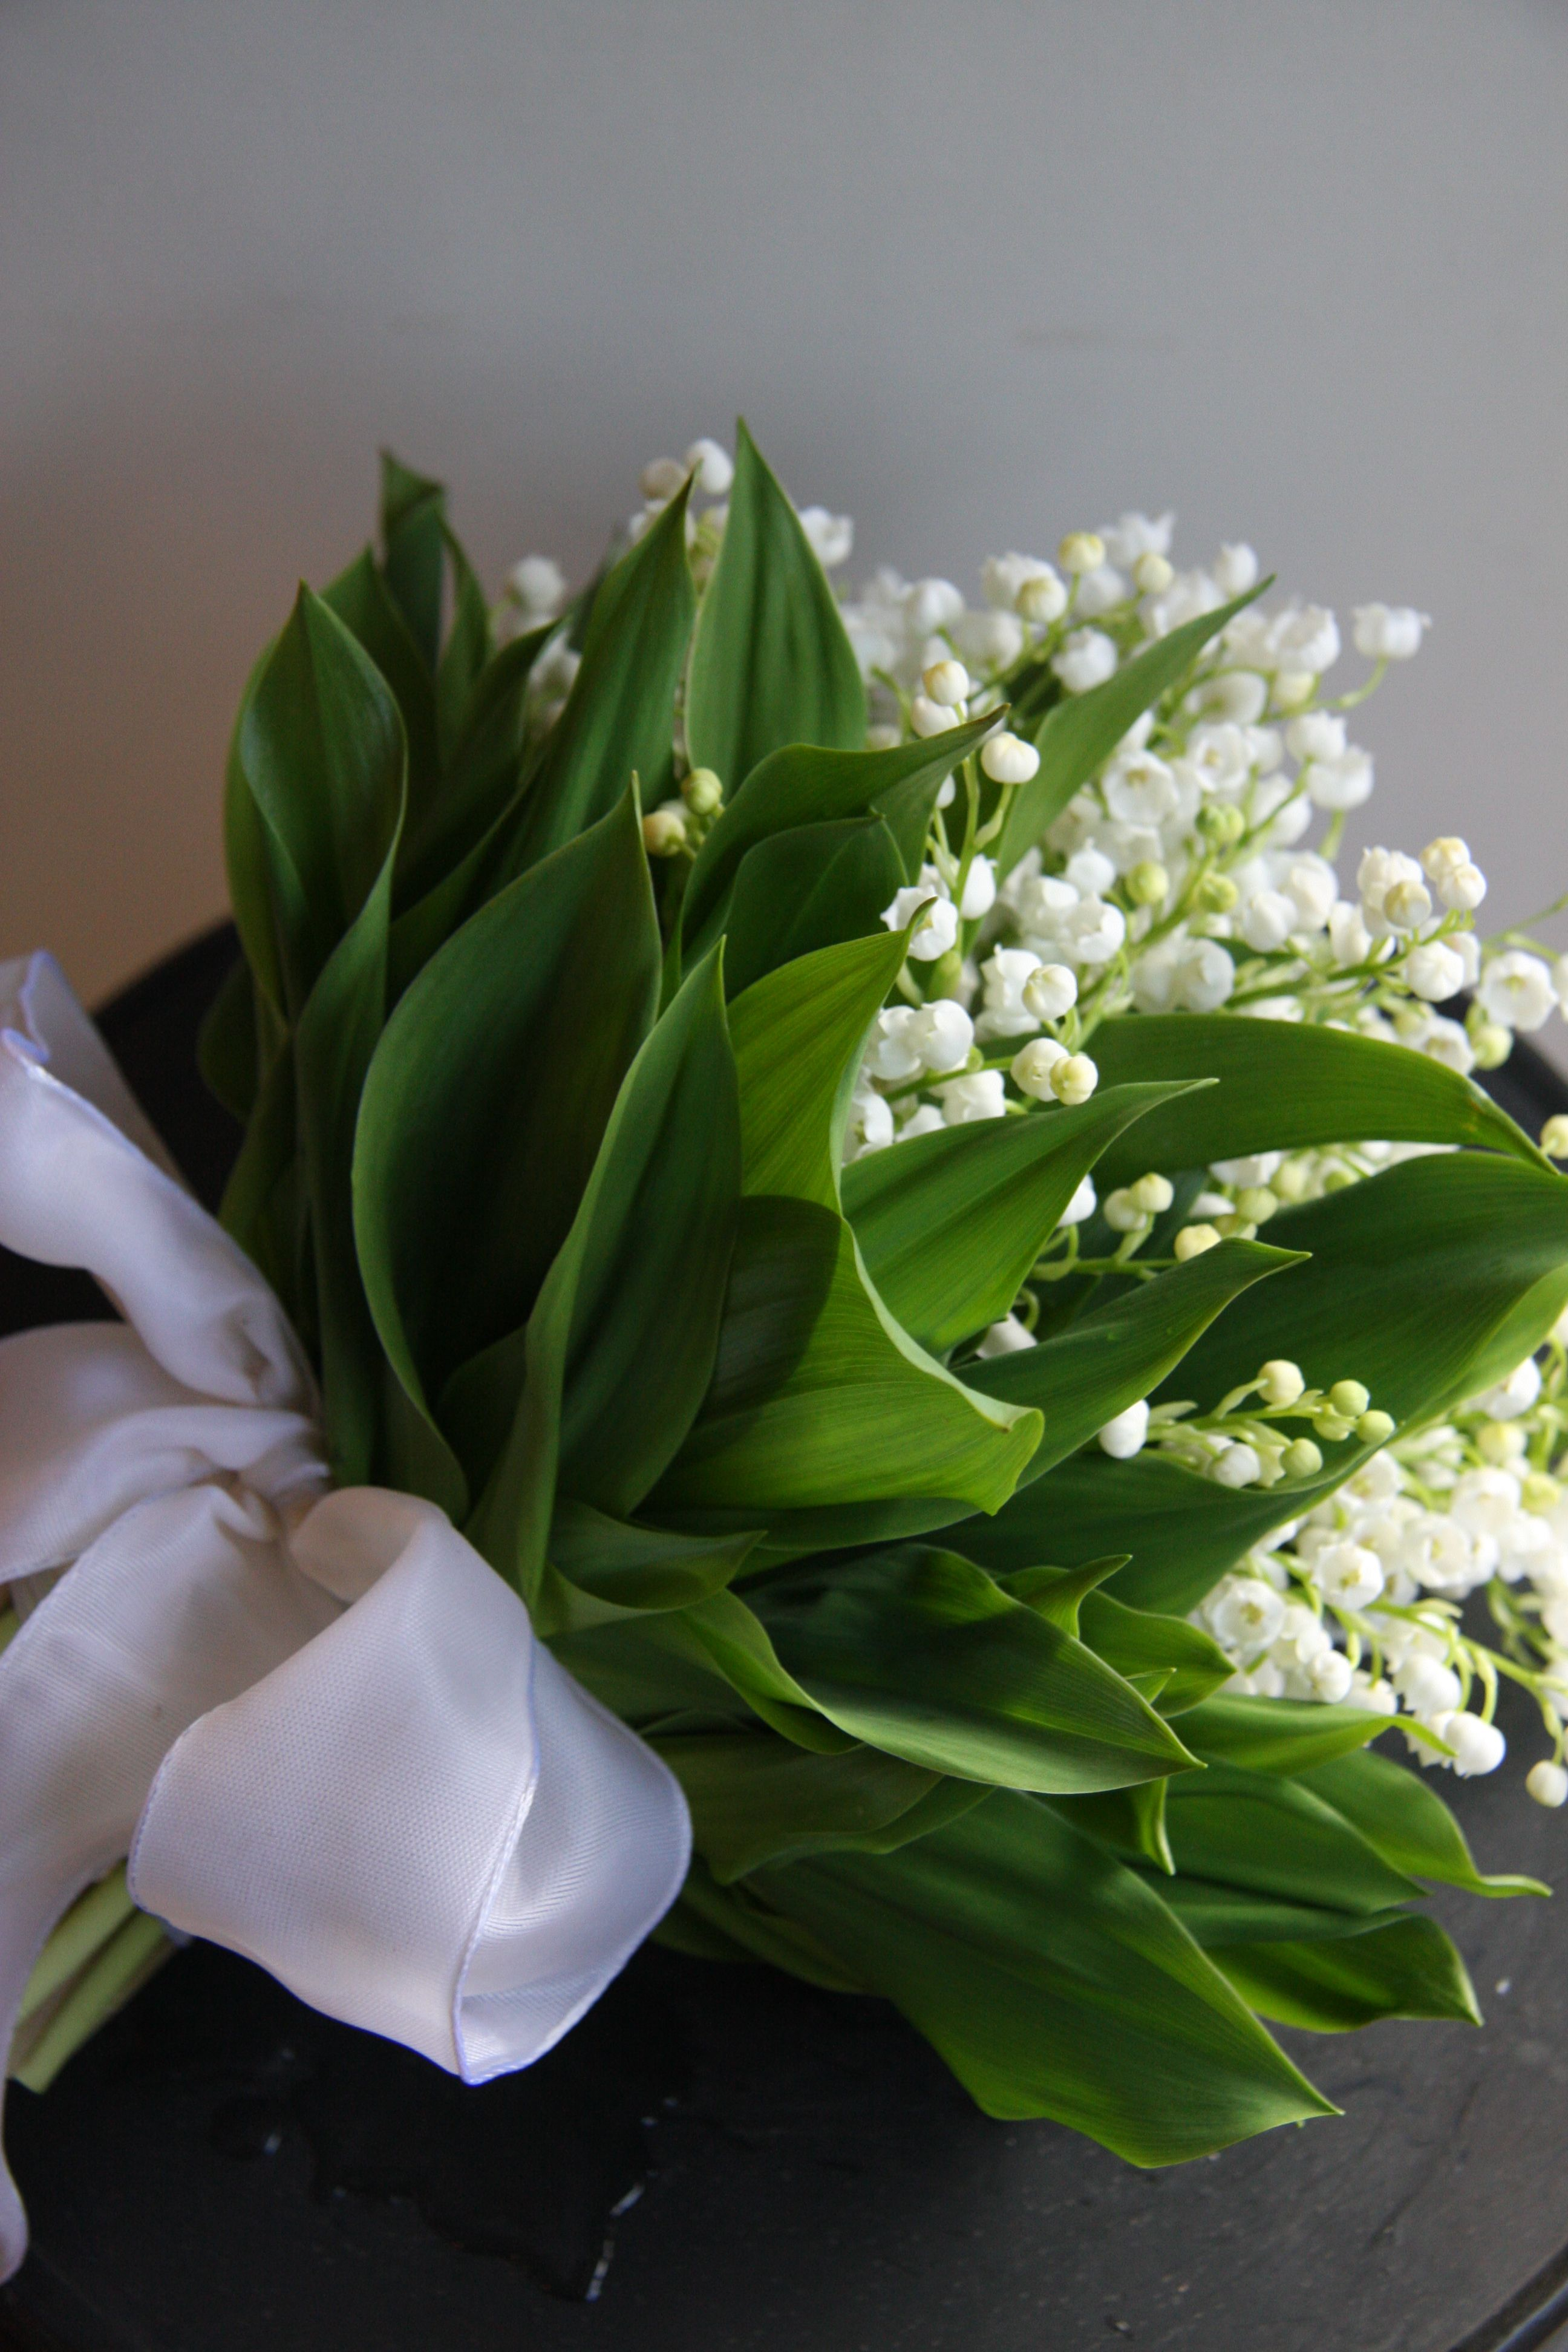 My mother carried a bouquet of lilly of the valley for her wedding my mother carried a bouquet of lilly of the valley for her wedding kate middleton also carried a hand picked bouquet from prince william that came from his izmirmasajfo